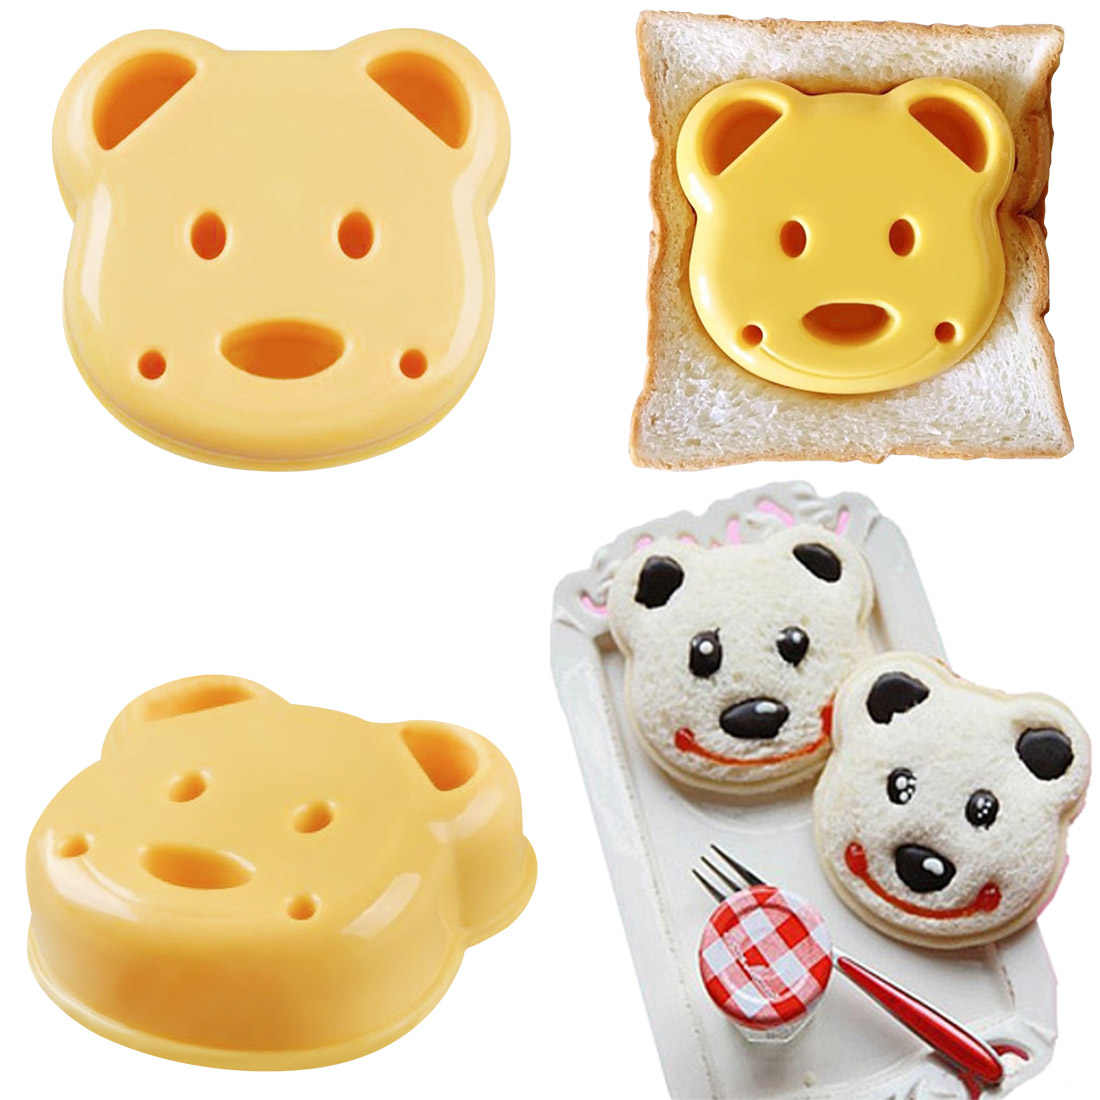 1x Bear Shape DIY Biscuit Cookie Pastry Mold Kitchen Aluminium V2T5 Tool D3K8